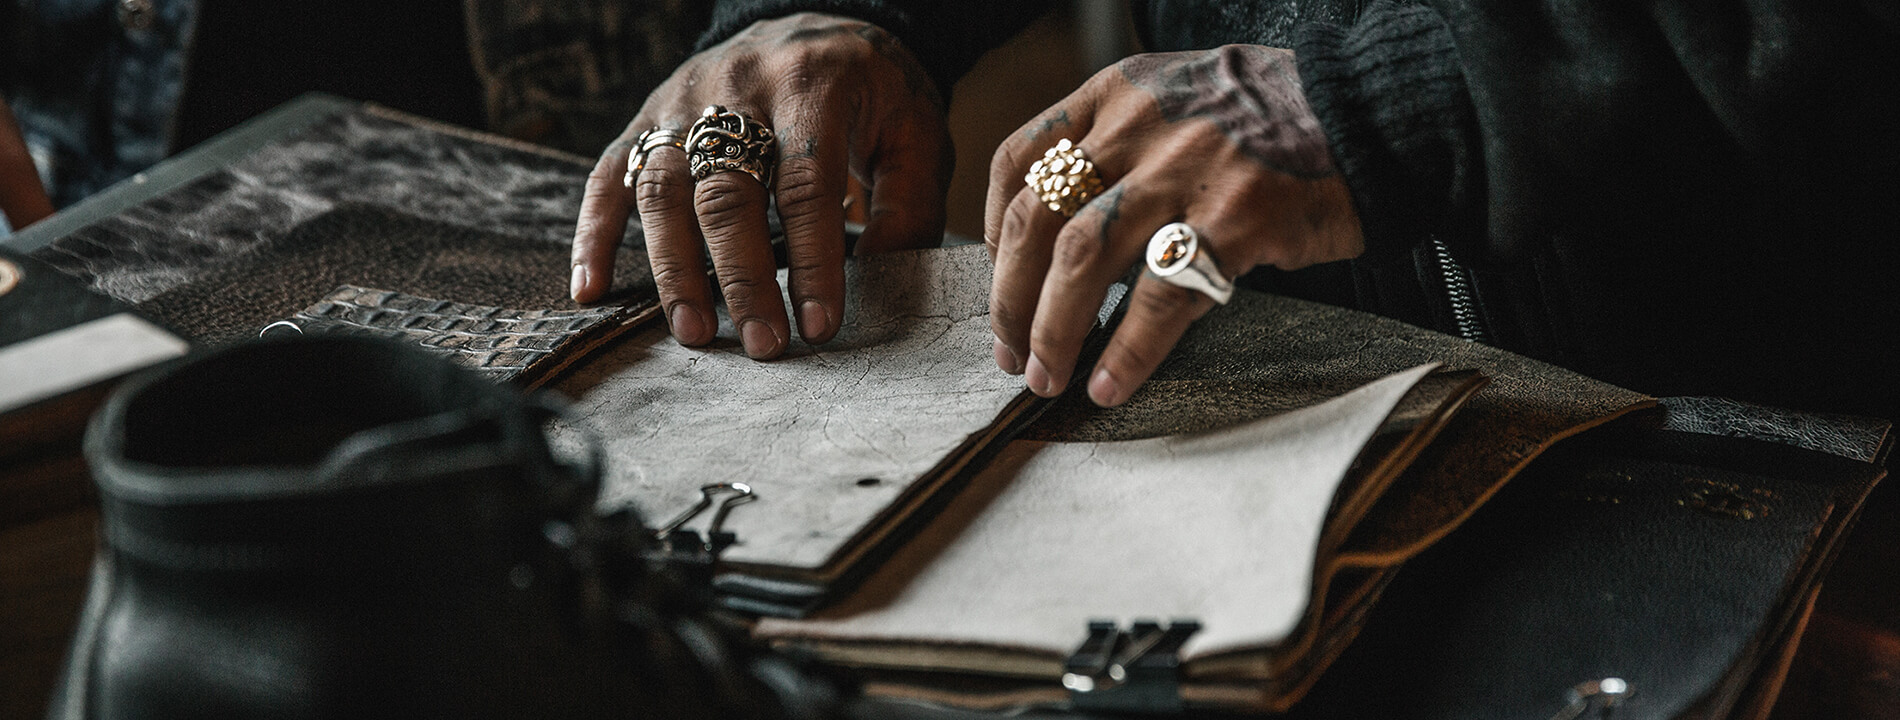 A man's weathered and tattooed hands, wearing chunky rings are leafing through a variety of leathers.